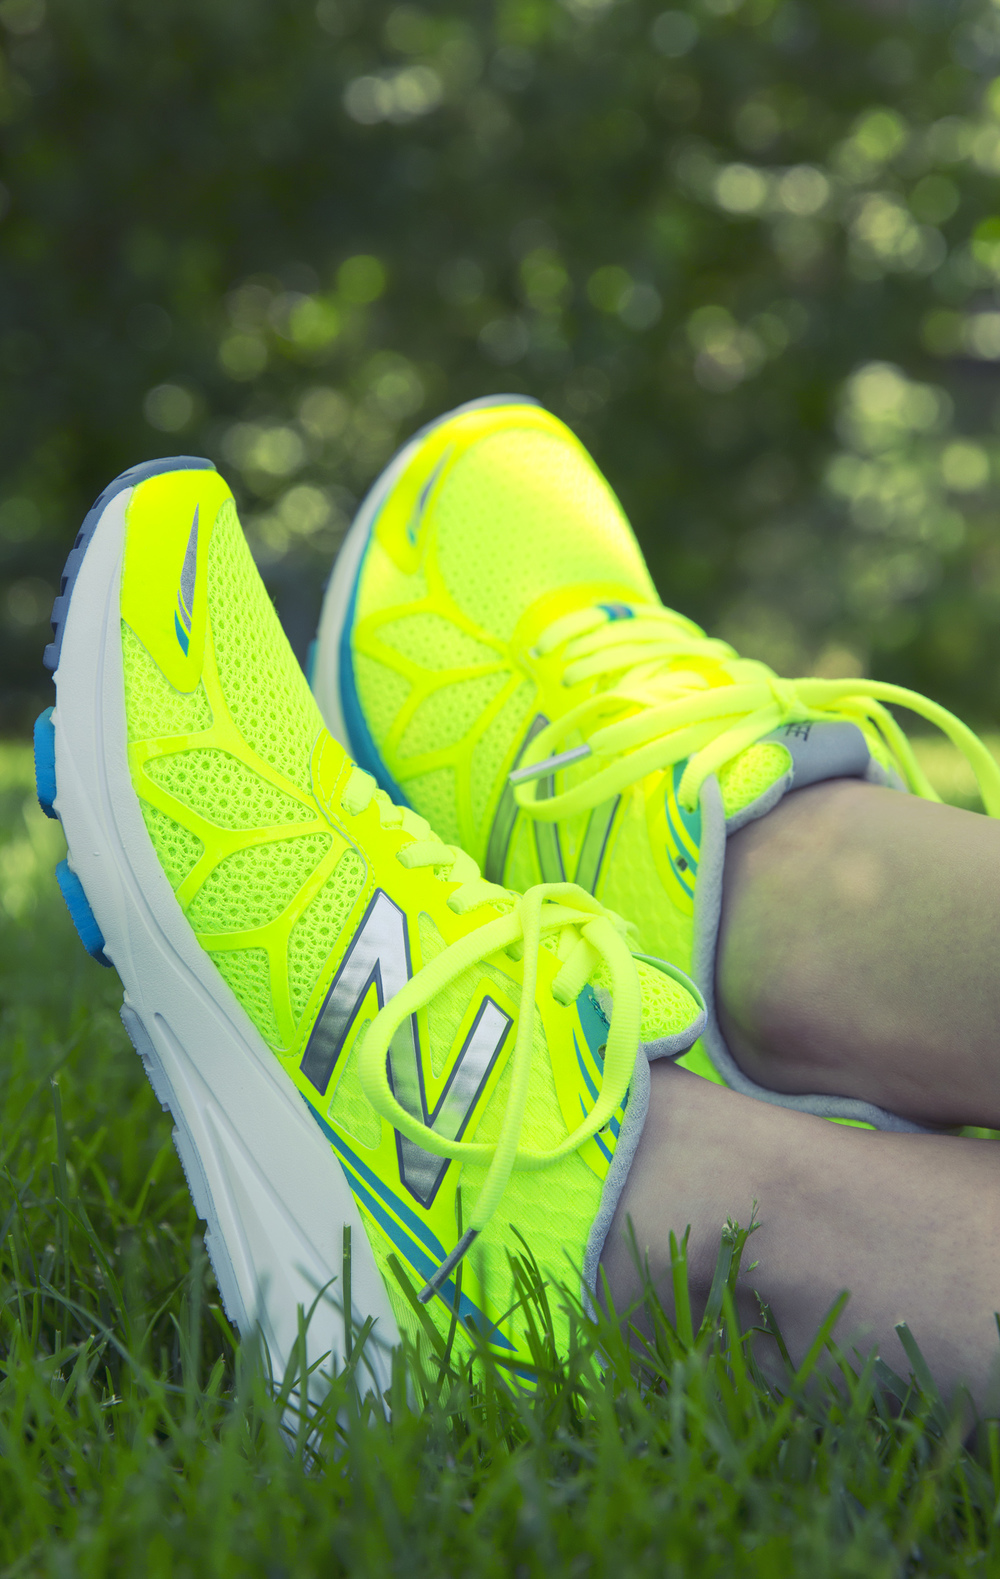 Neon Sneakers! Photo by Katherine Accettura